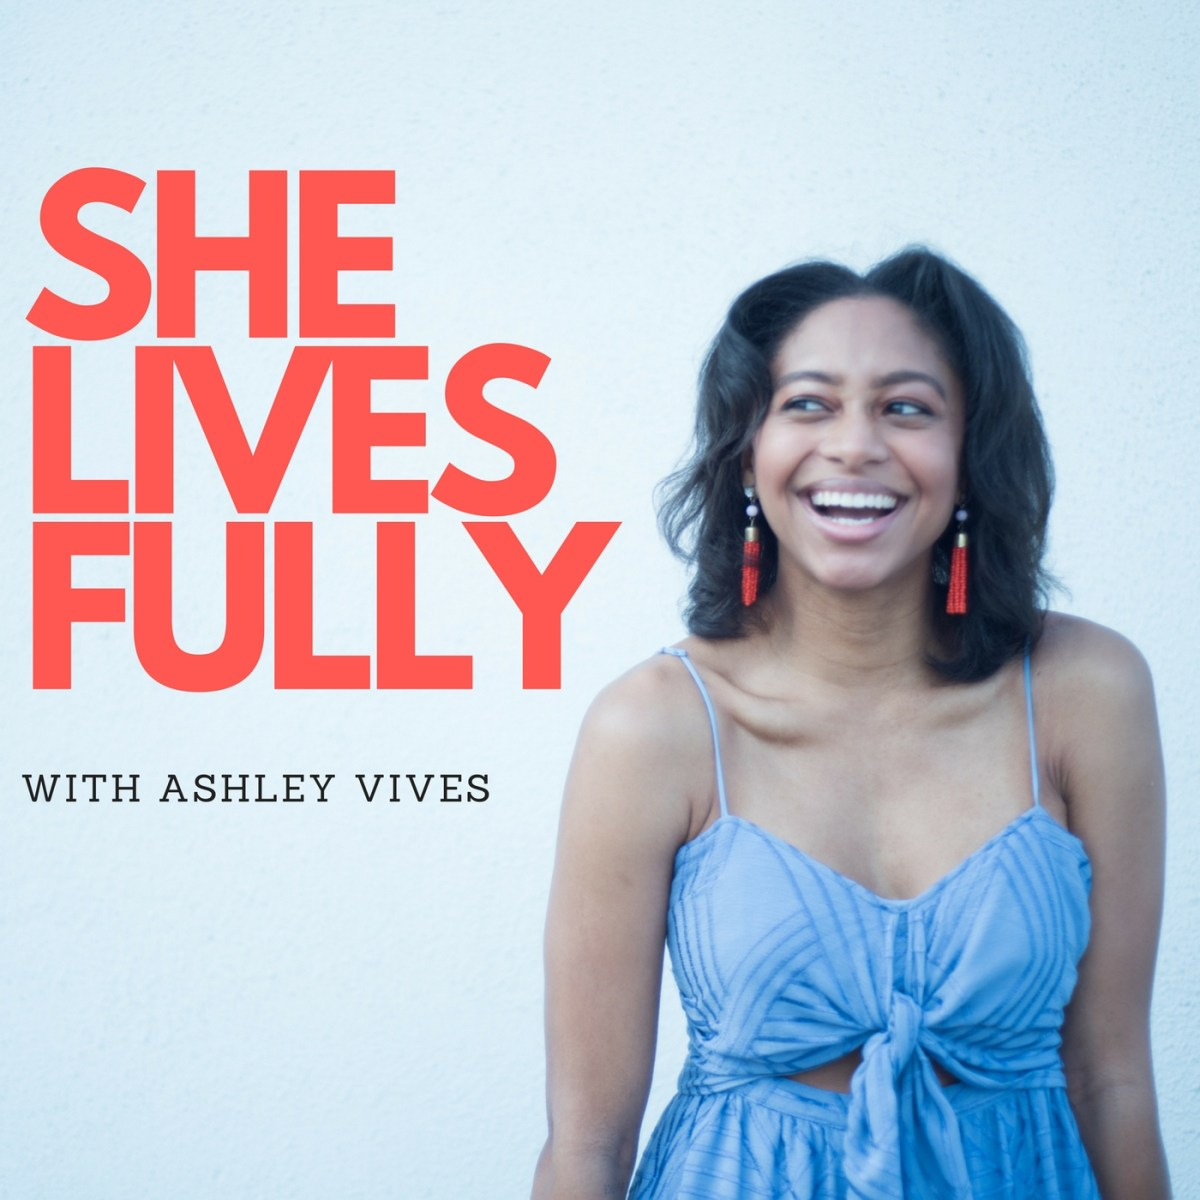 006: Apologizing, Forgiveness and Accepting Compliments | She Lives Fully Podcast